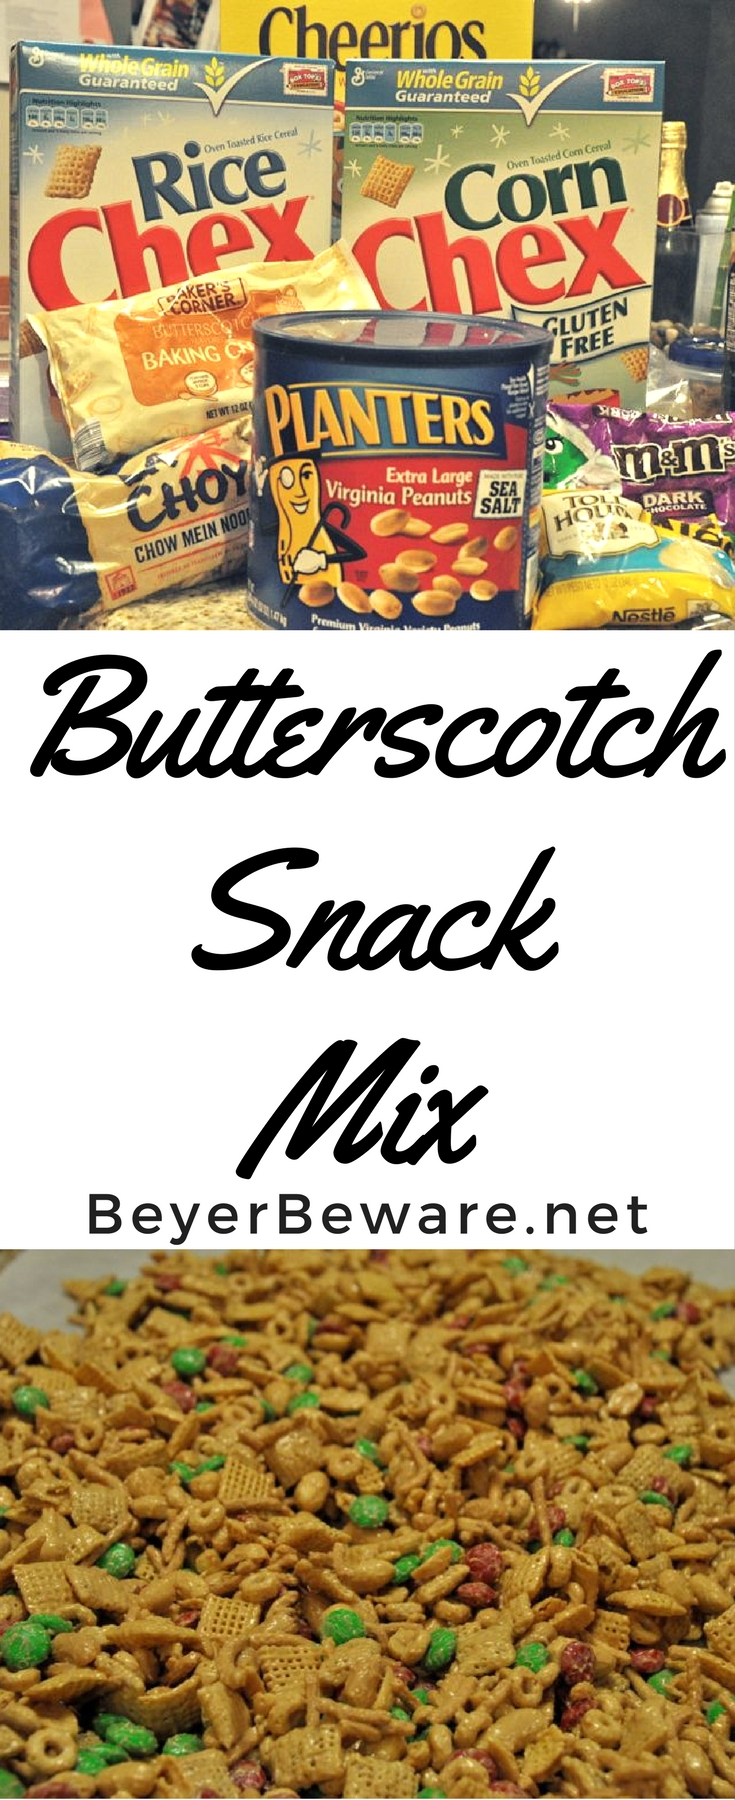 The sweet and salty combinations of cereal, peanuts, and candy all covered in a sweet butterscotch coating makes this butterscotch snack mix an addicting treat.